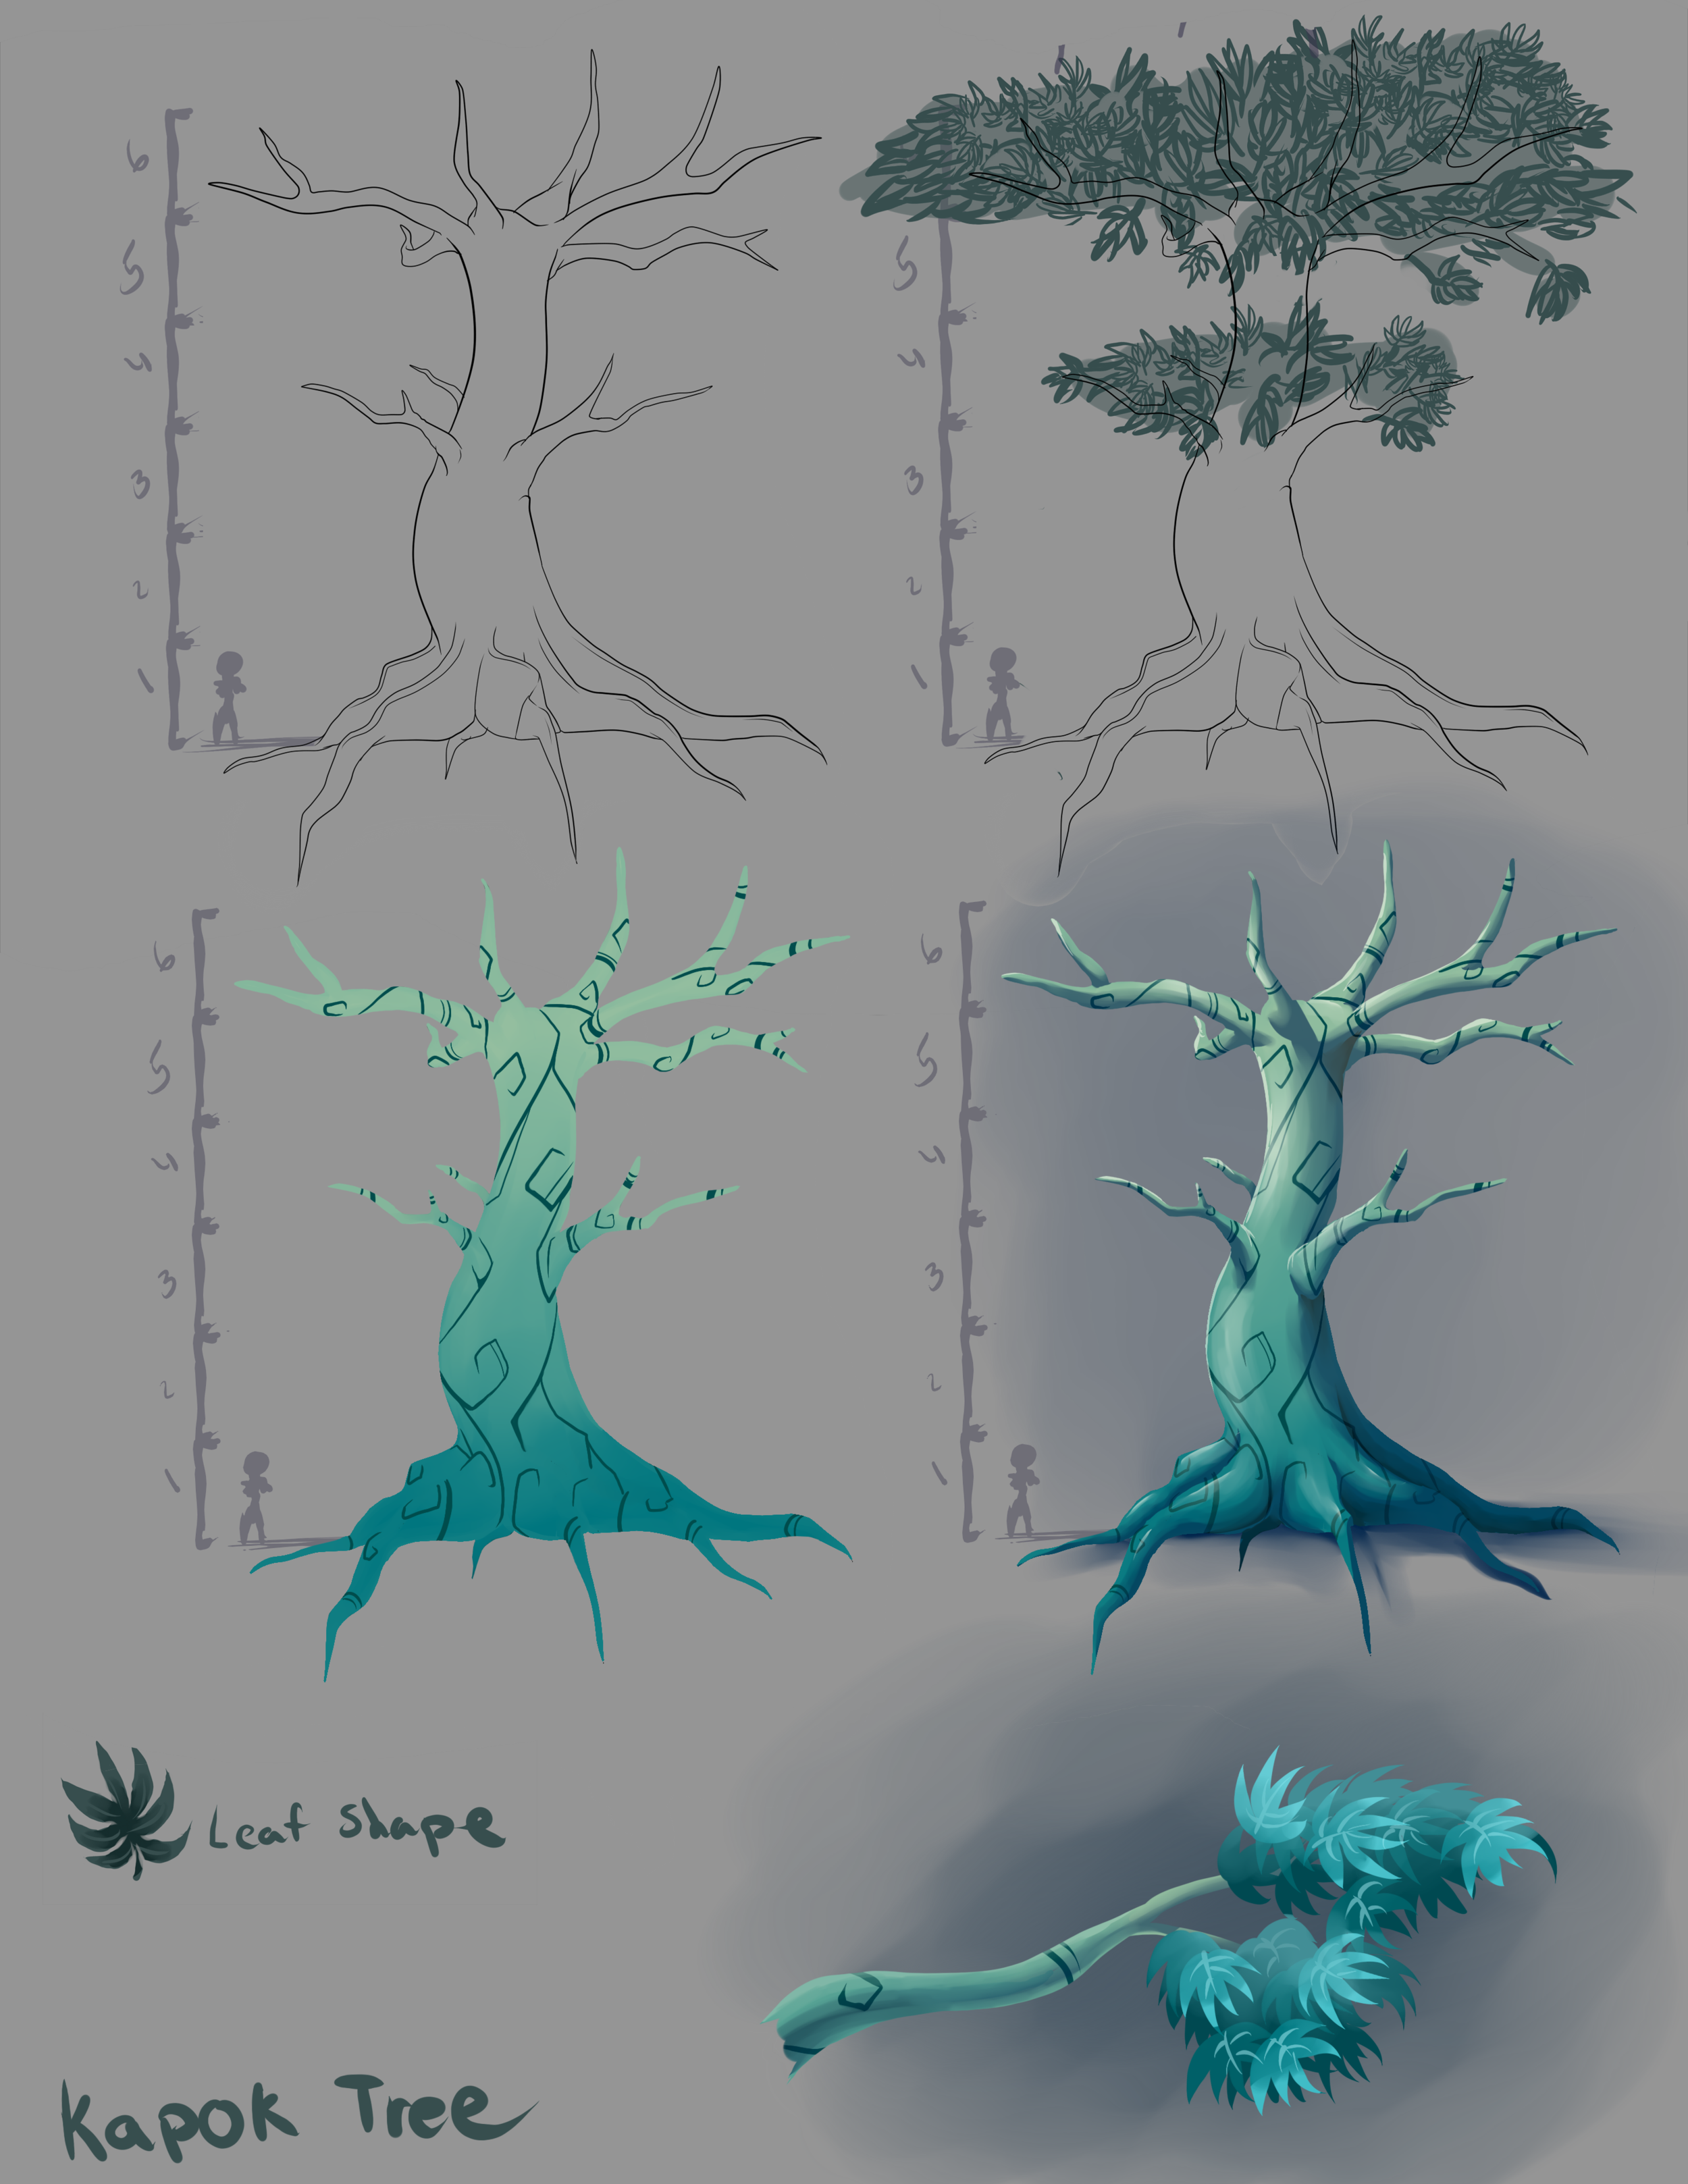 Hero asset based on a Kapok tree.